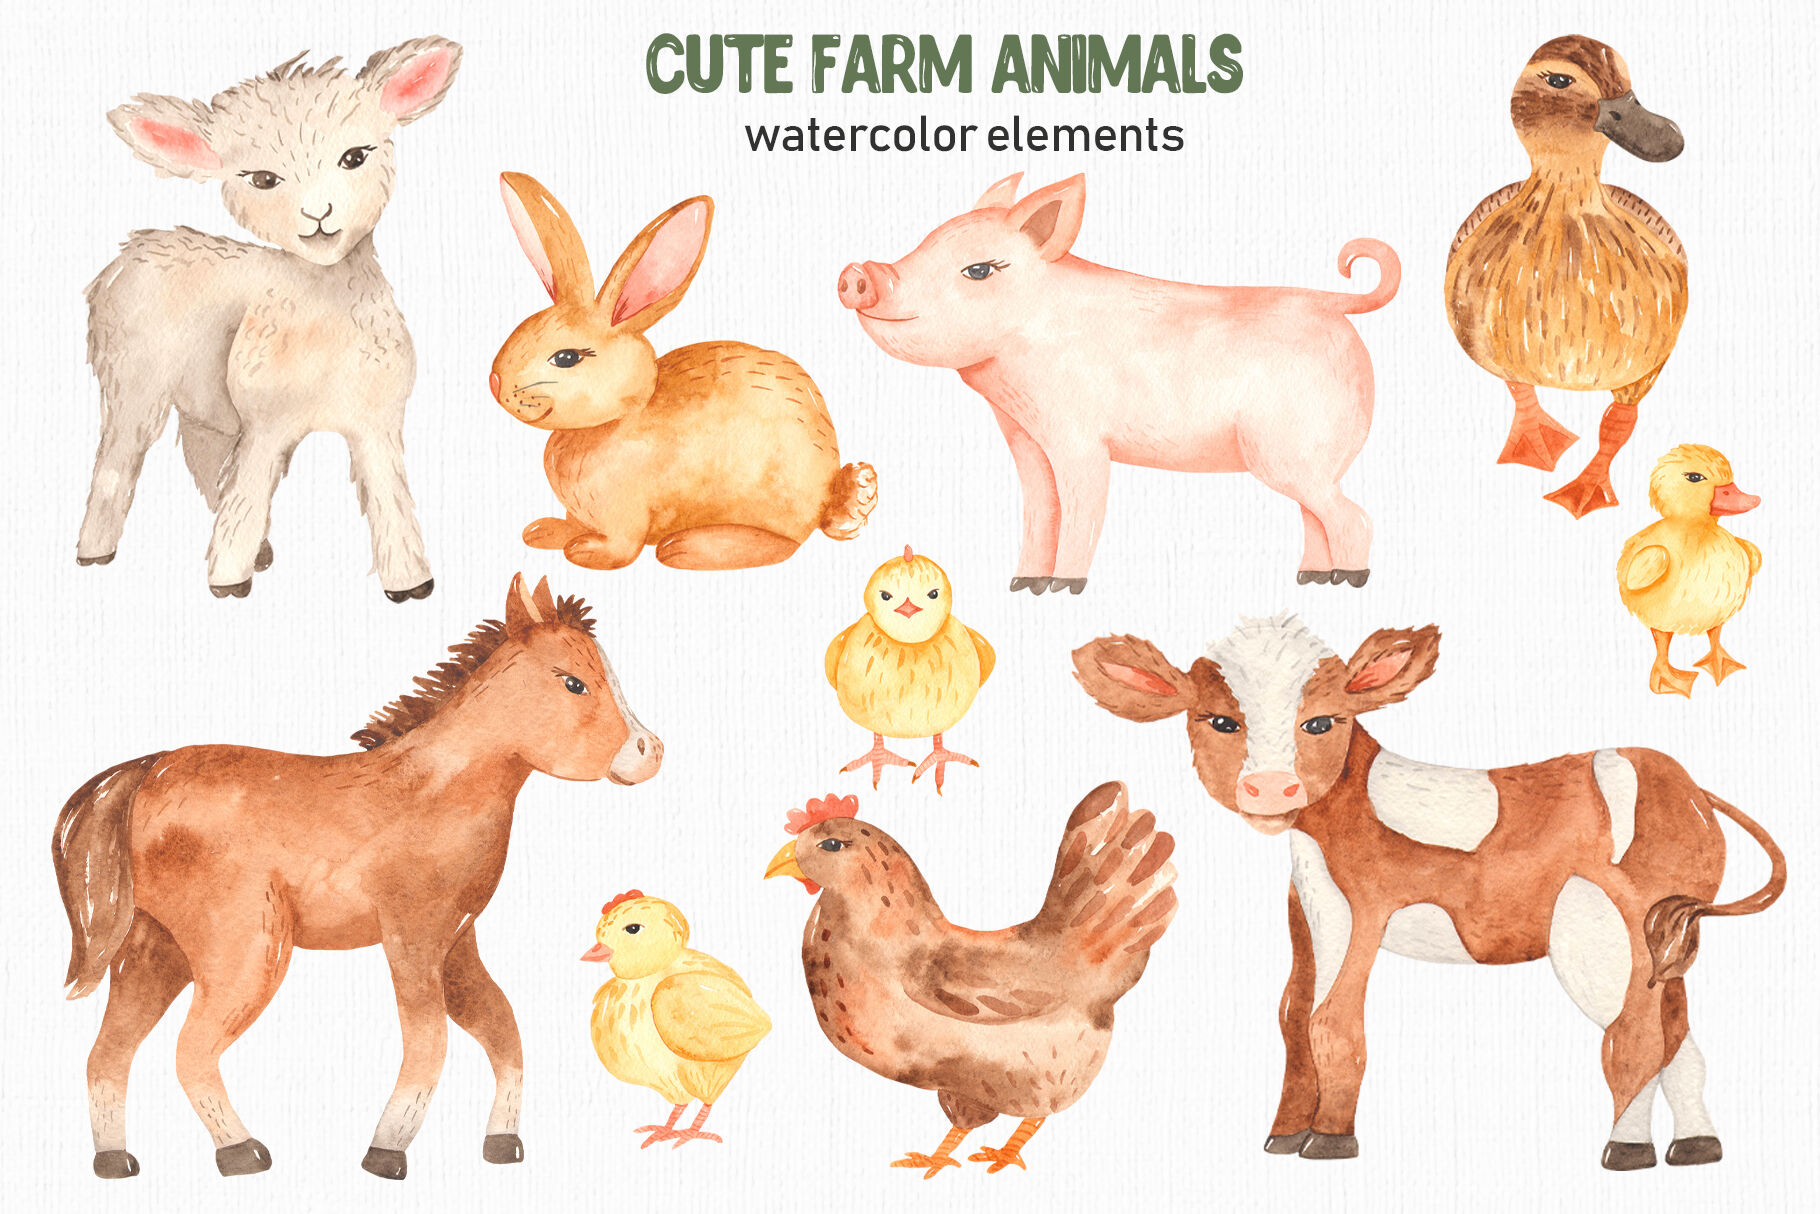 Cute farm animals watercolor collection clipart By Marina ...